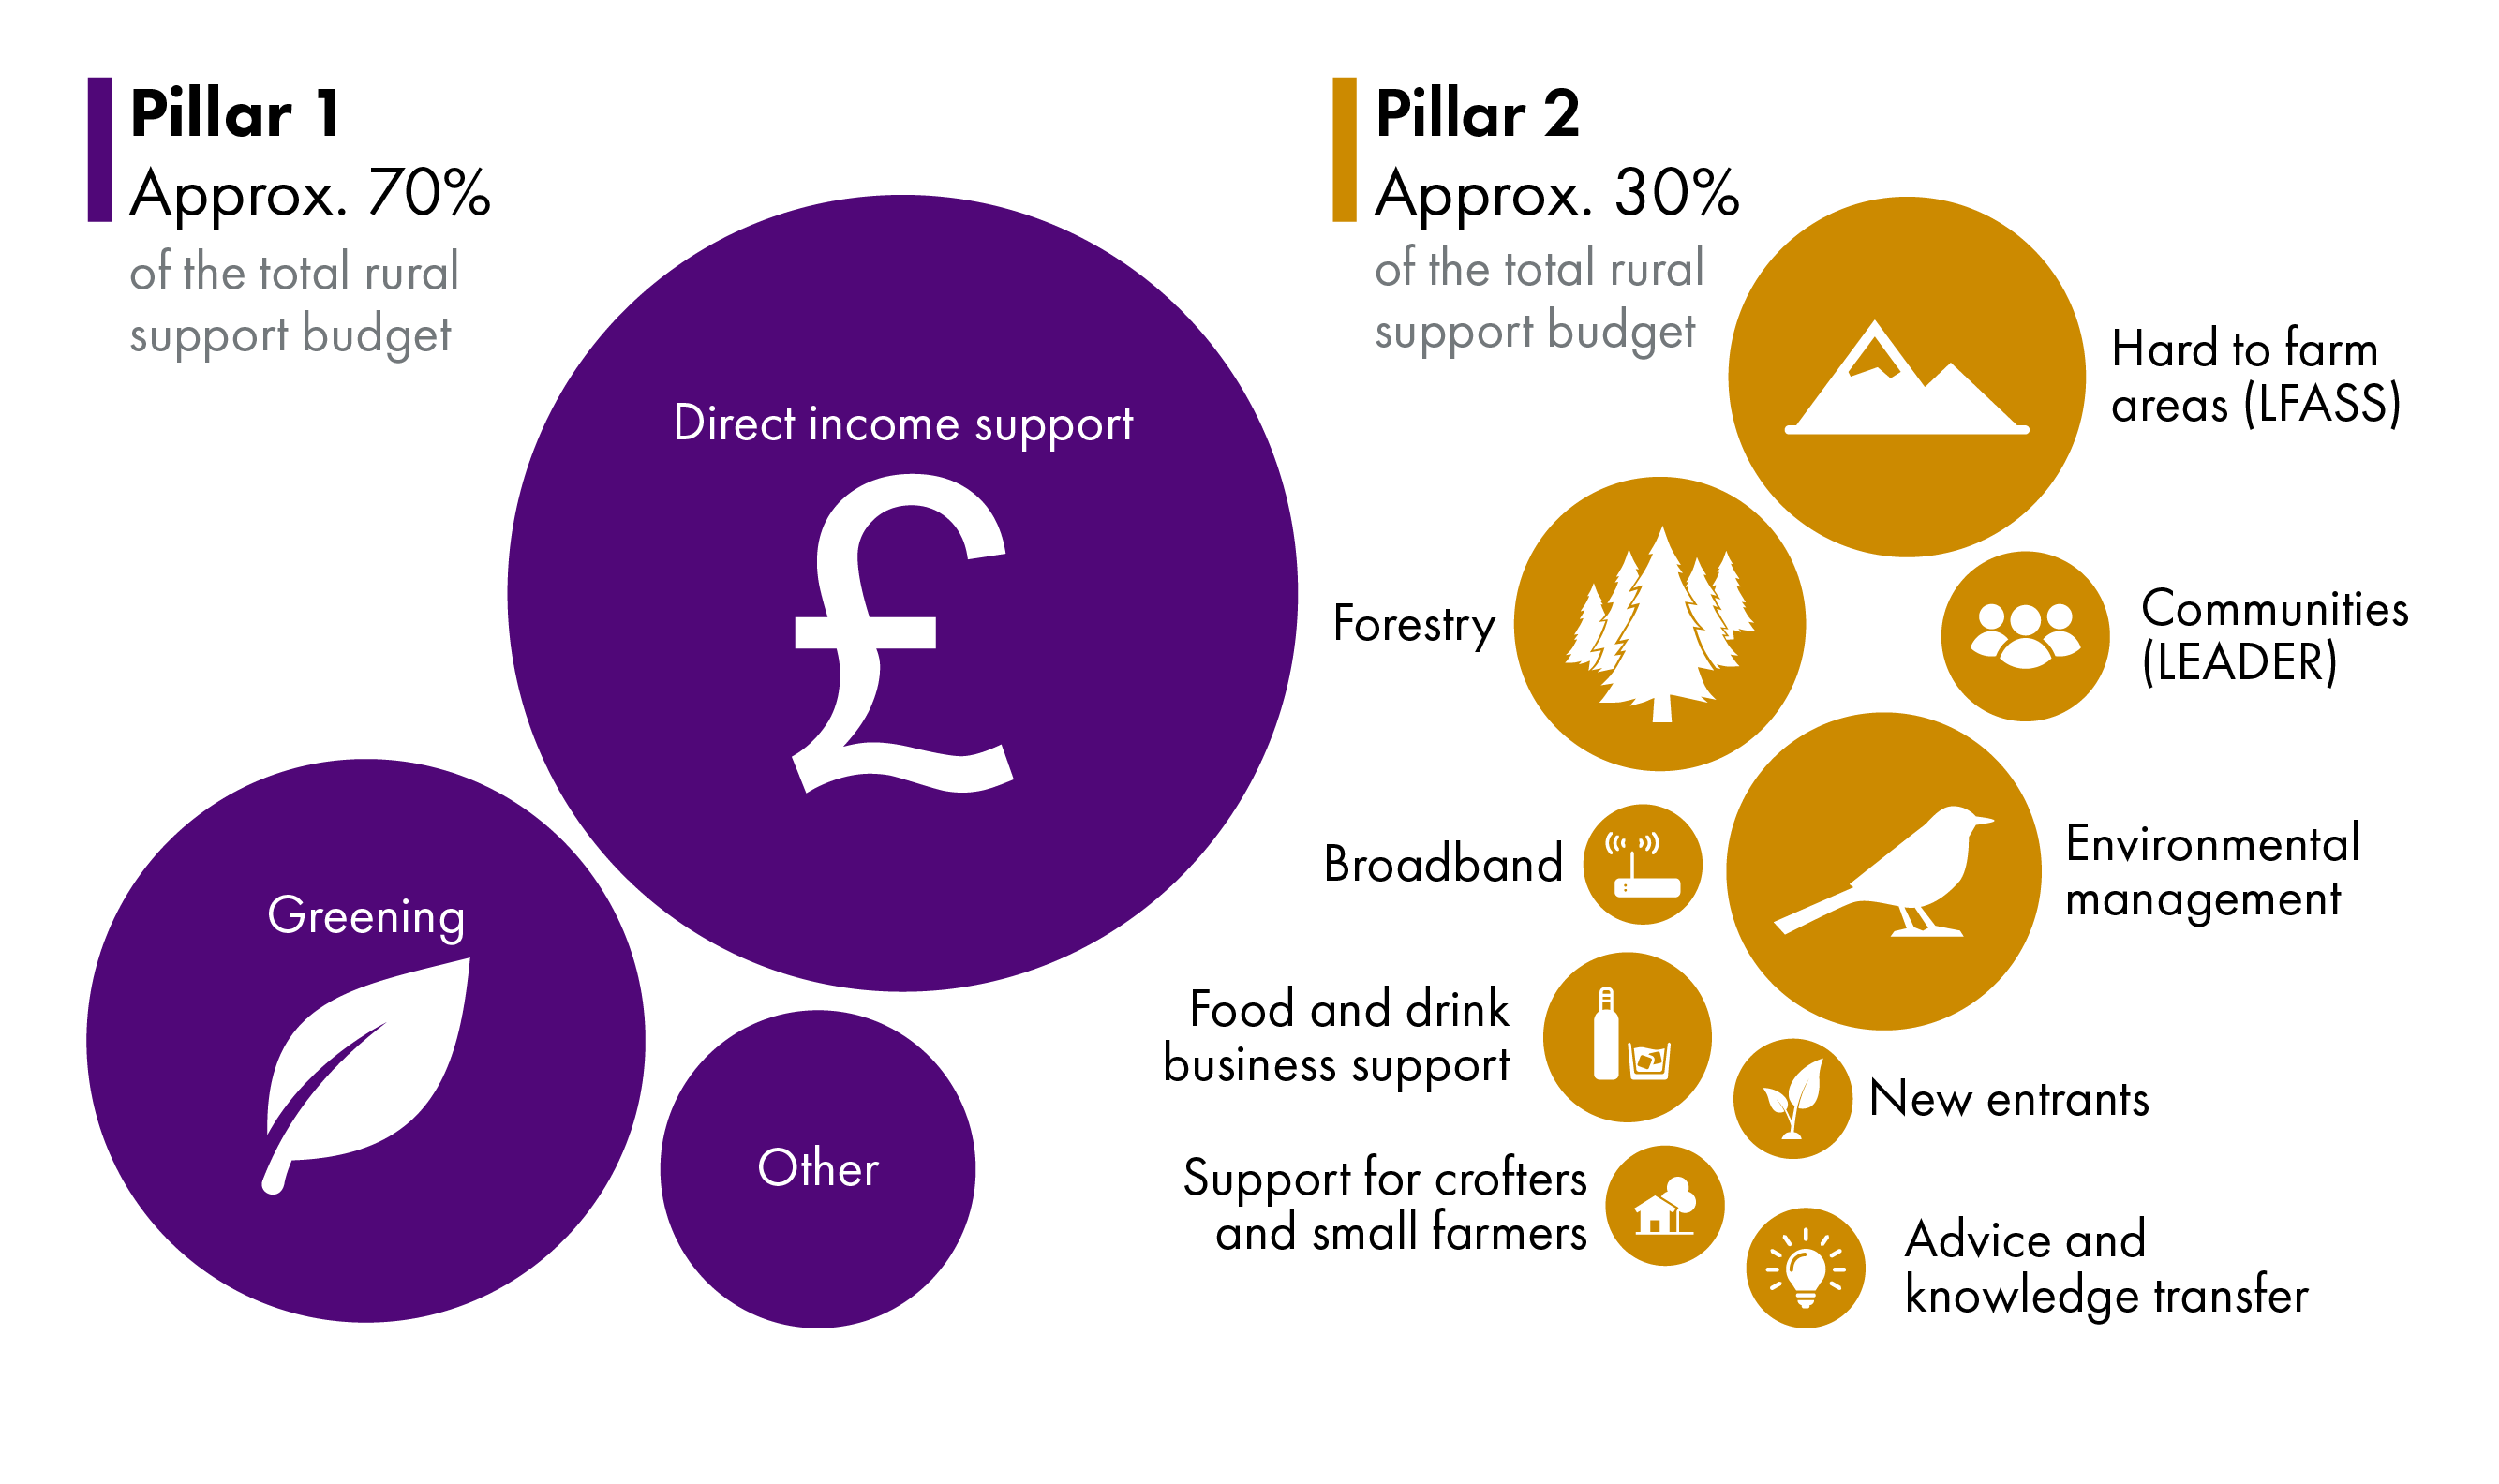 There are several different schemes under the Common Agricultural Policy in Scotland. In Pillar 1, the majority of funding goes to income support, and secondly to greening. In Pillar 2, the largest areas of support are for hard to farm areas, forestry, and environmental management, followed by smaller budgets like food and drink business support and community projects.